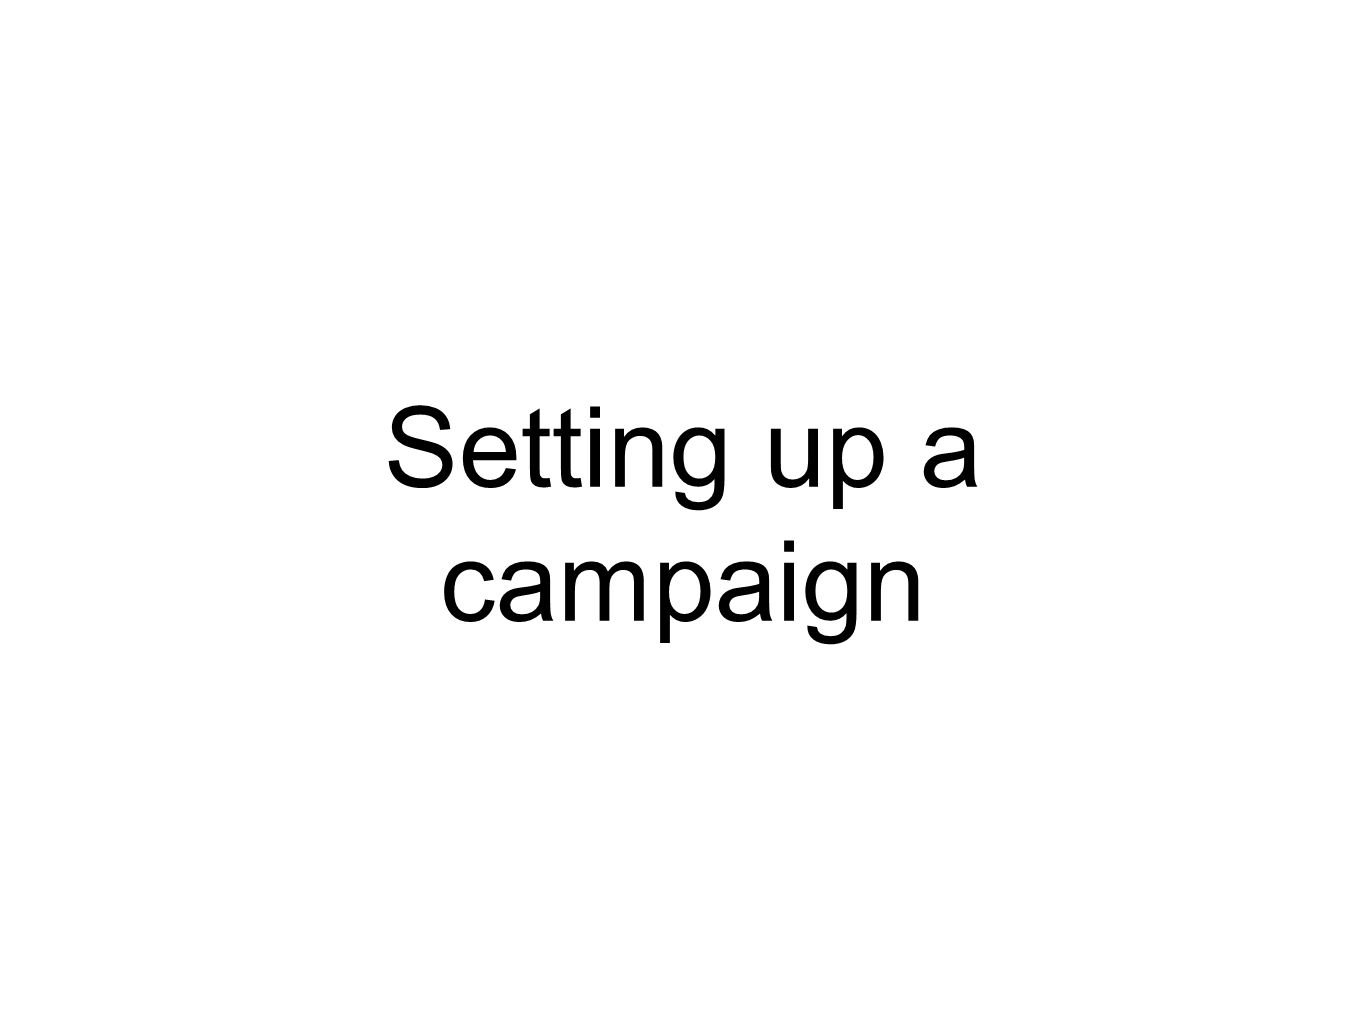 Setting up a campaign